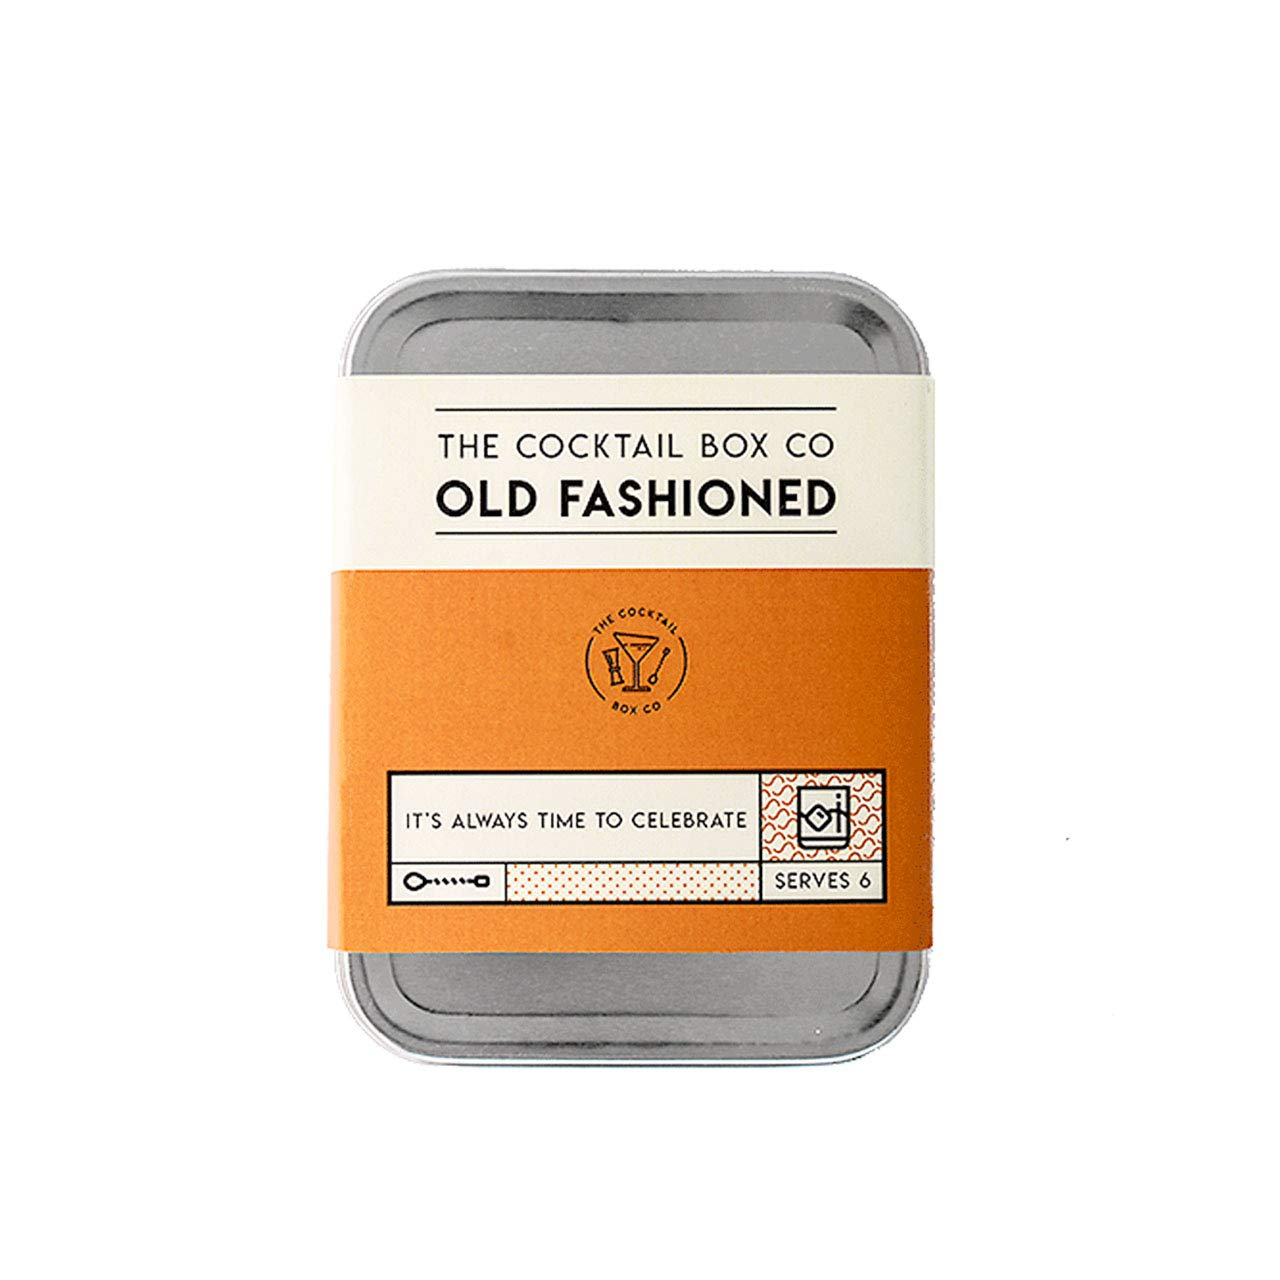 Cocktail Kit - The Old Fashioned - Makes 6 Premium Cocktails